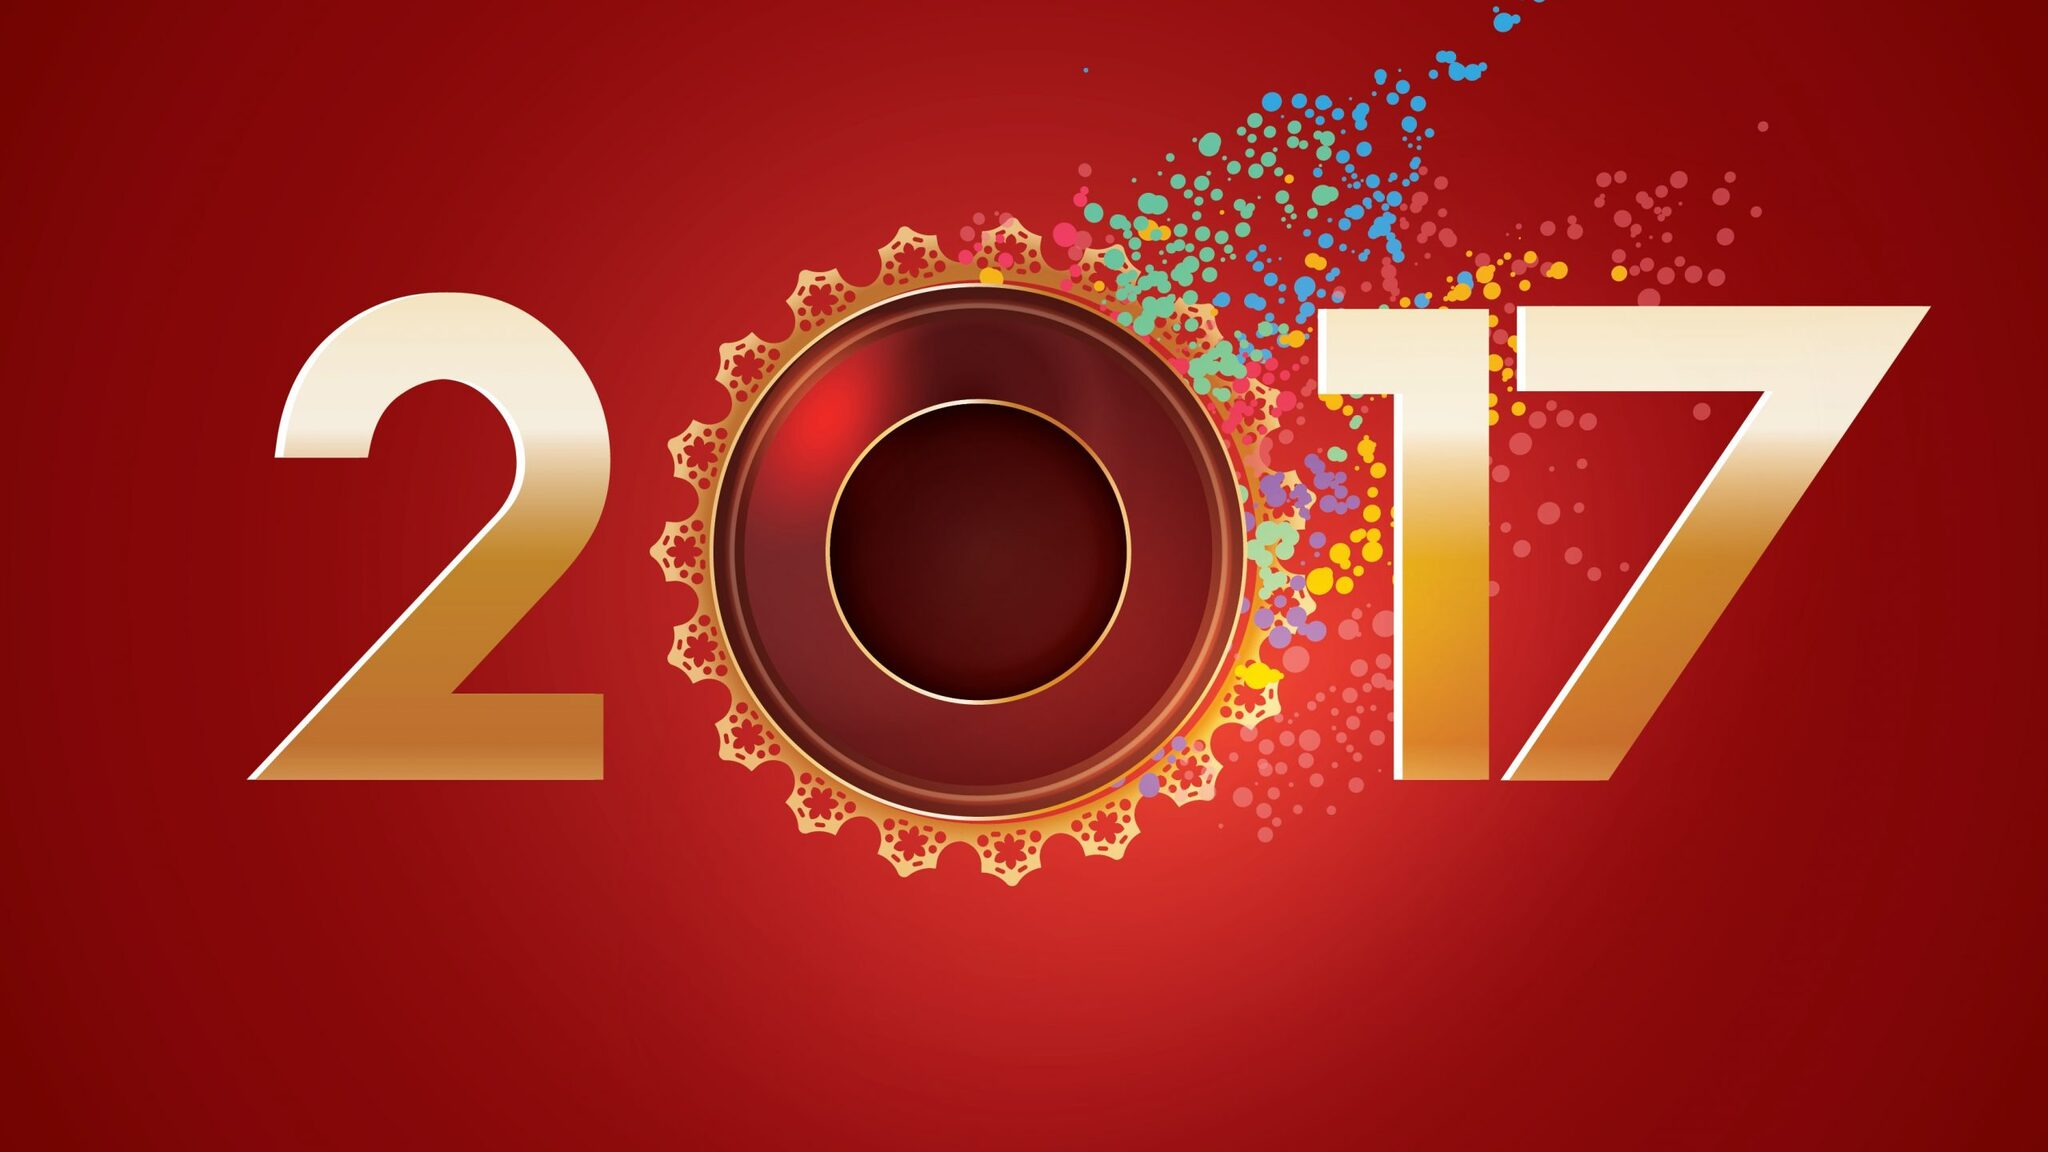 2048x1152 Happy New Year Greeting 2048x1152 Resolution HD 4k